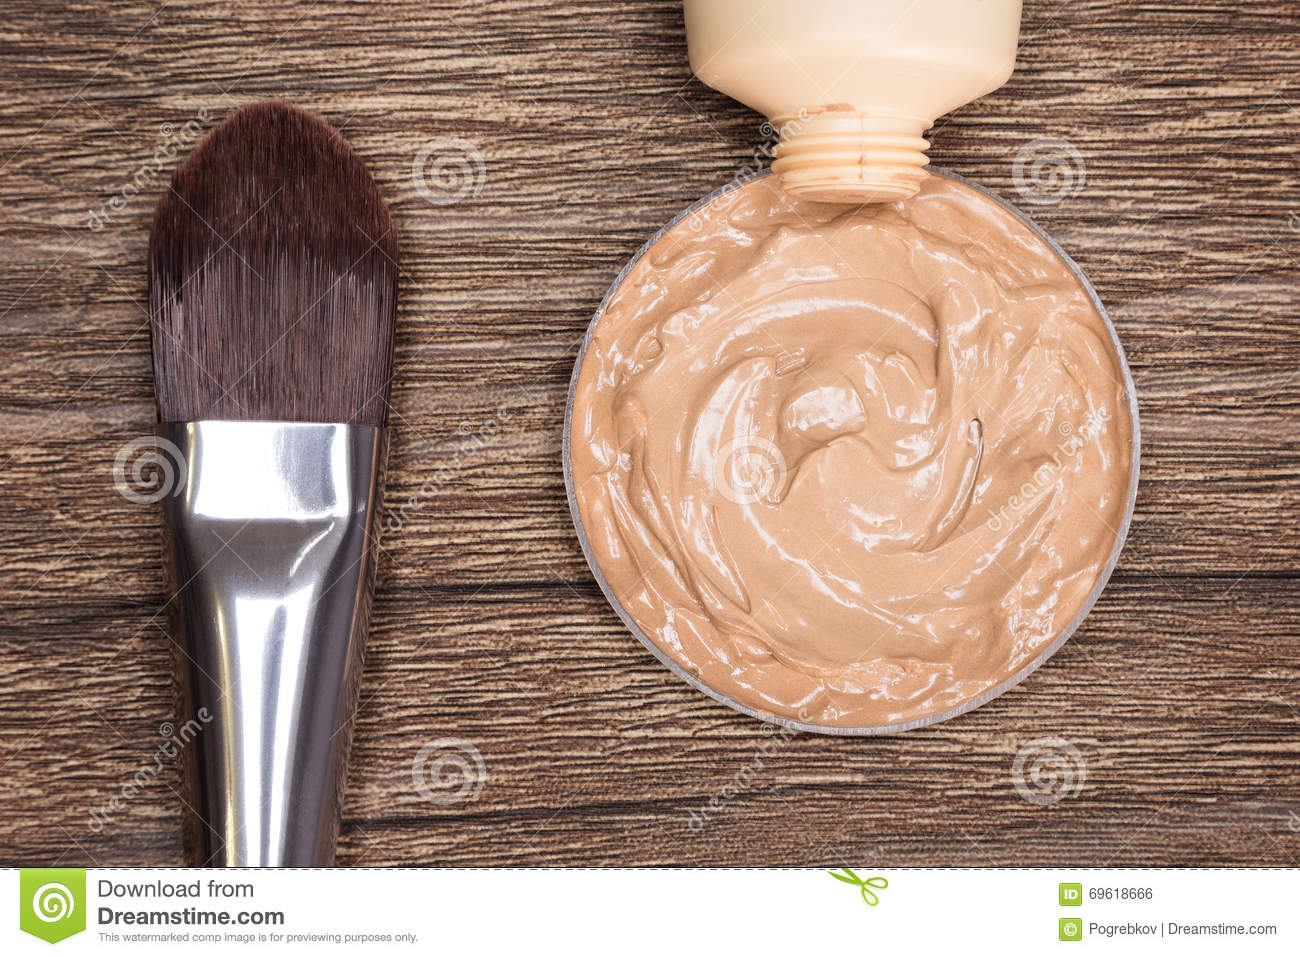 Makeup brush with liquid foundation squeezed out of tube